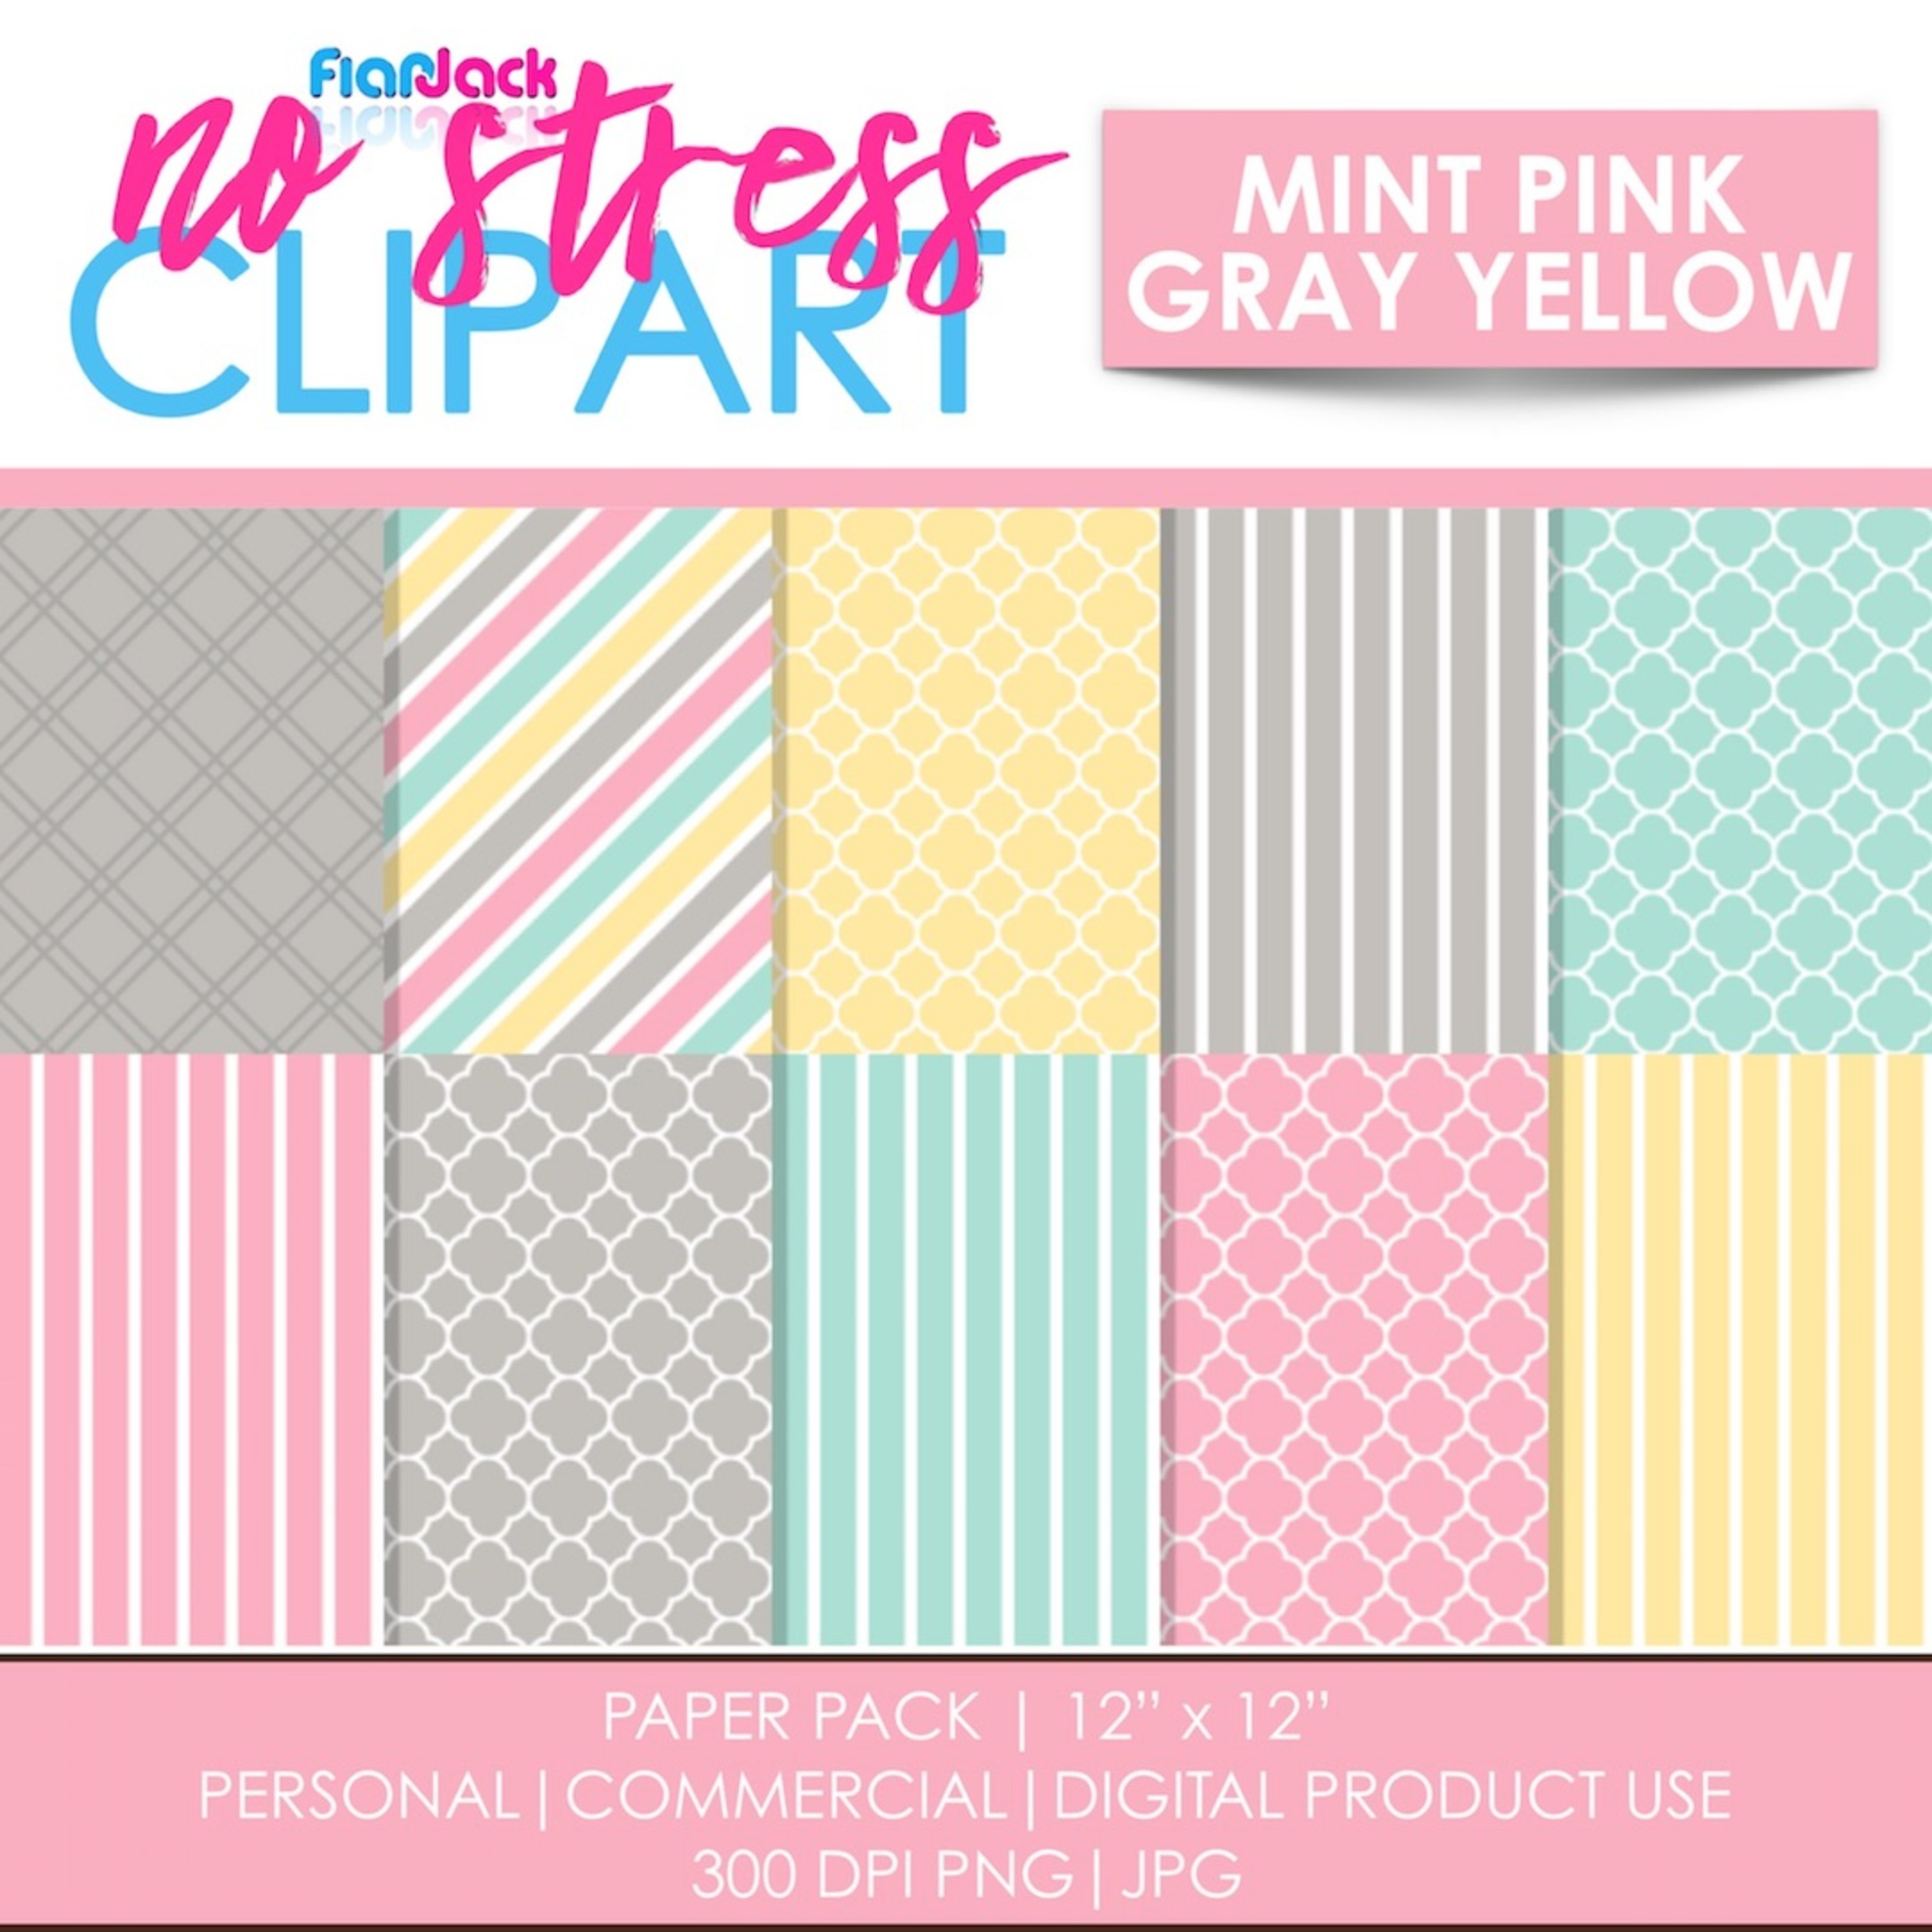 Mint Pink Gray Yellow Digital Papers